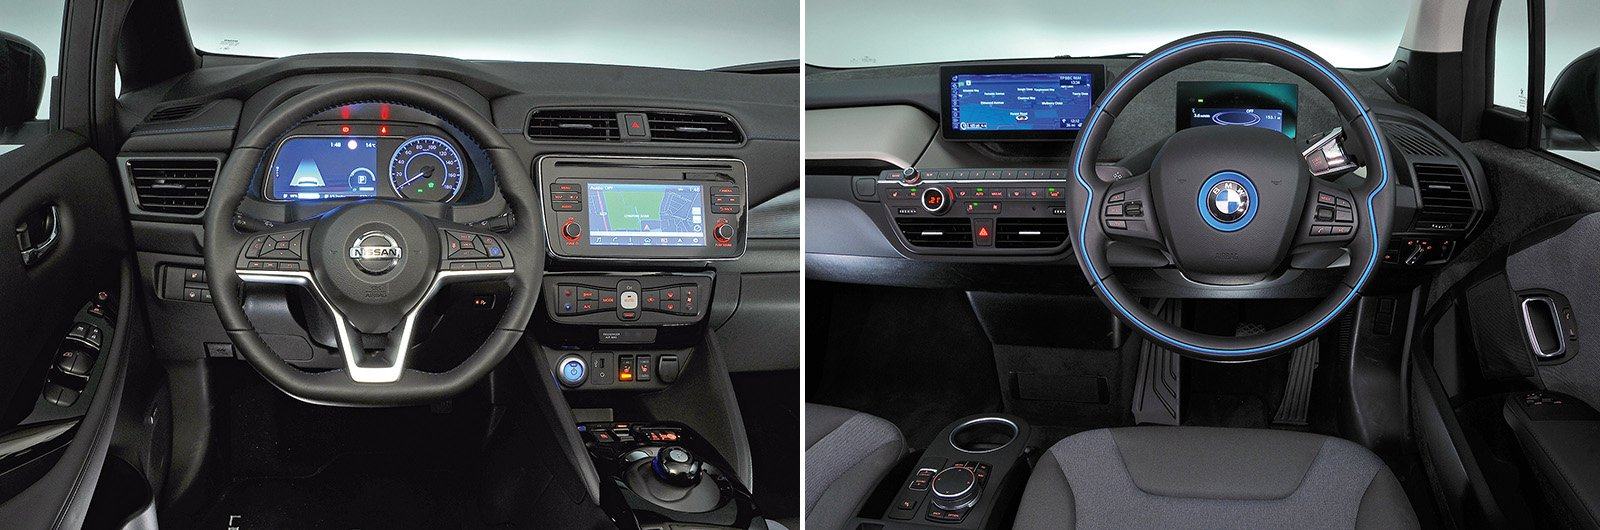 Nissan Leaf vs BMW i3 interior